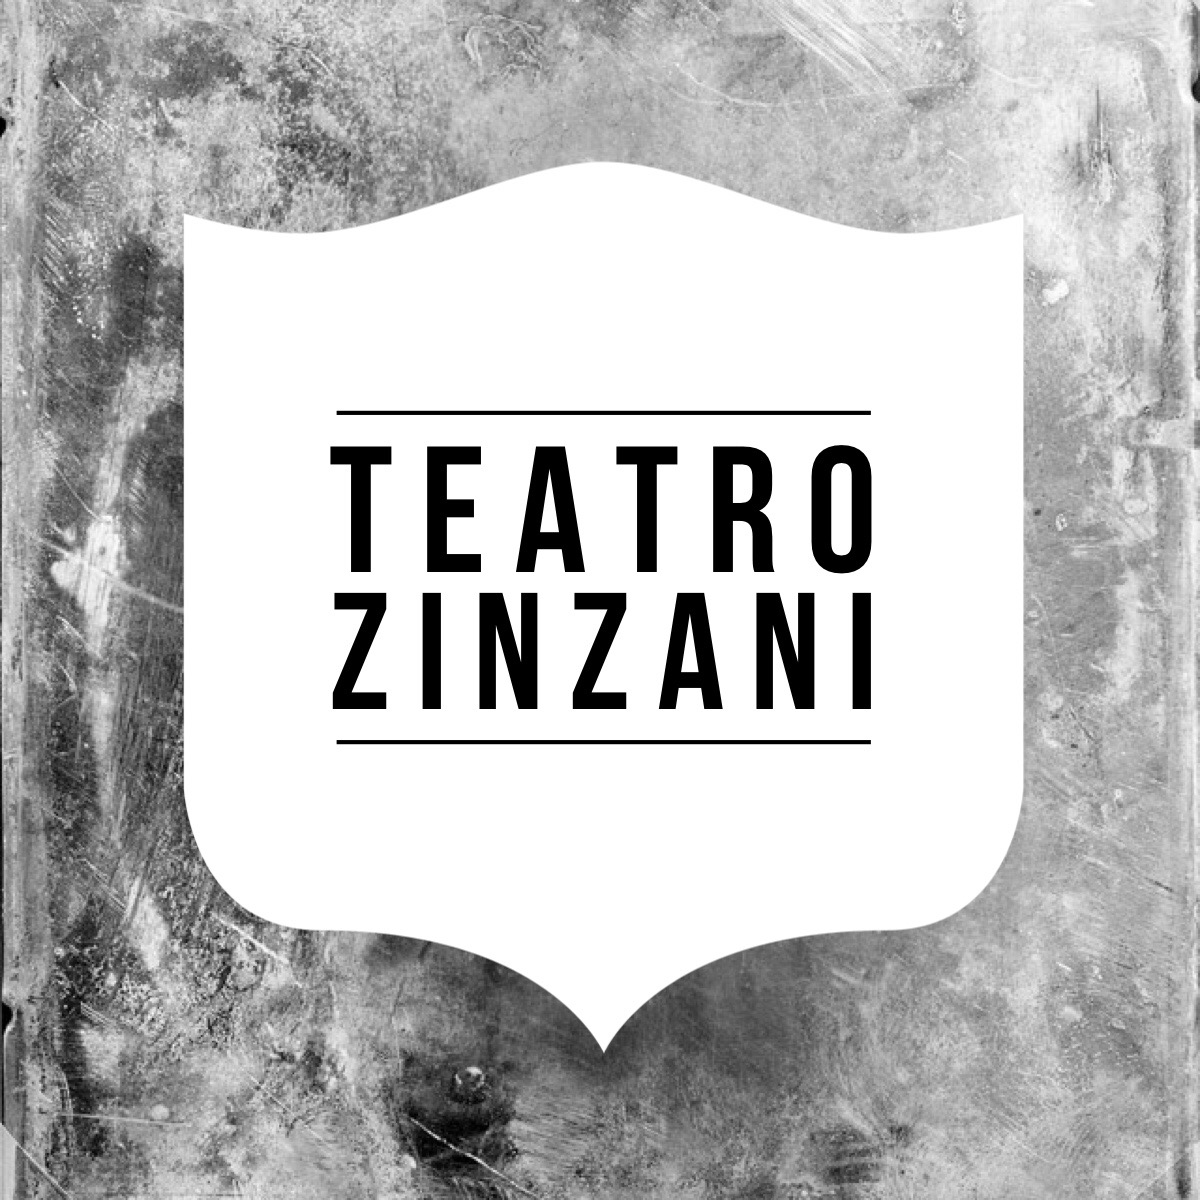 teatro zinzani experience gifts to give this season